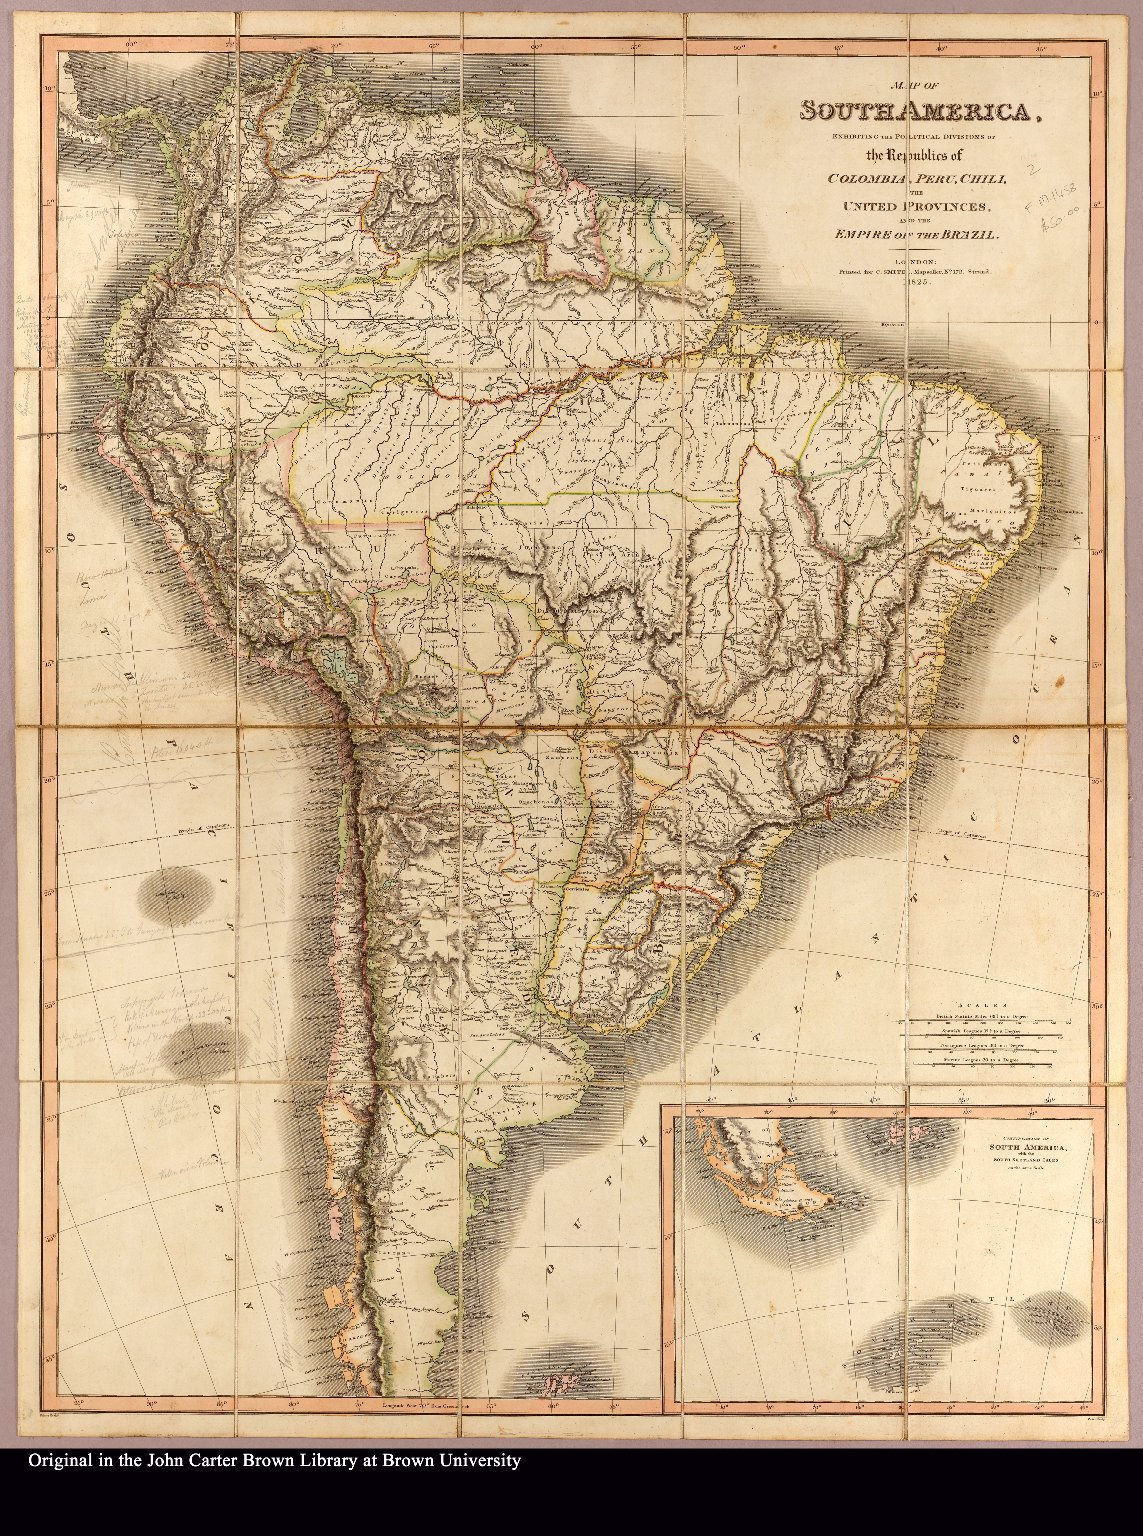 Map of South America, exhibiting the political divisions of the republics of Colombia, Peru, Chili, the United Provinces, and the empire of Brazil